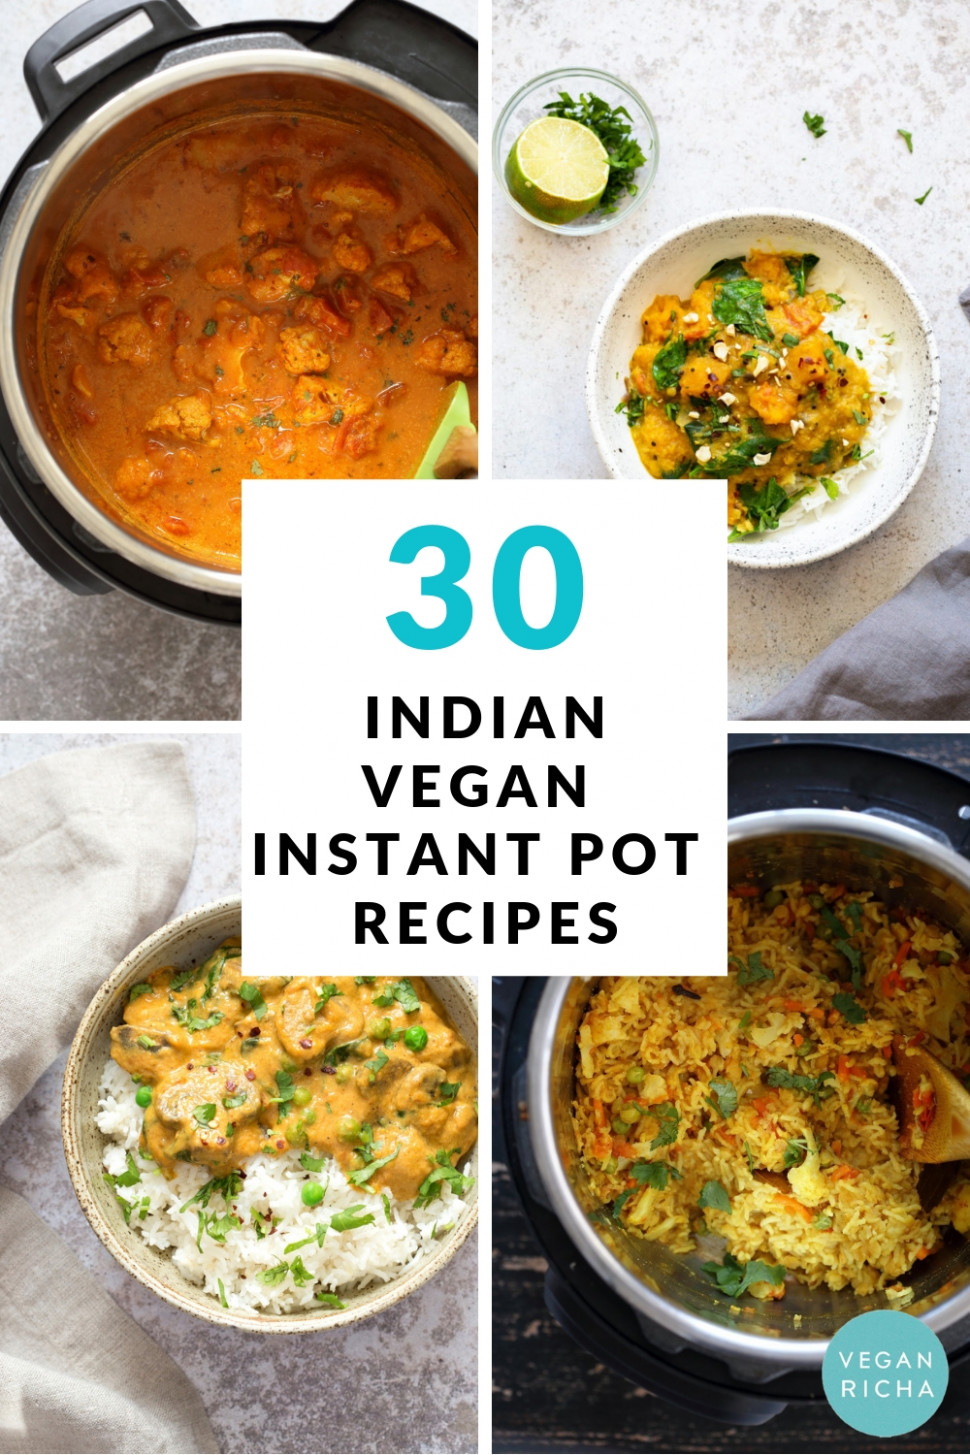 10 Instant Pot Vegan Indian Recipes - Vegan Richa - Recipes Butter Beans Vegetarian